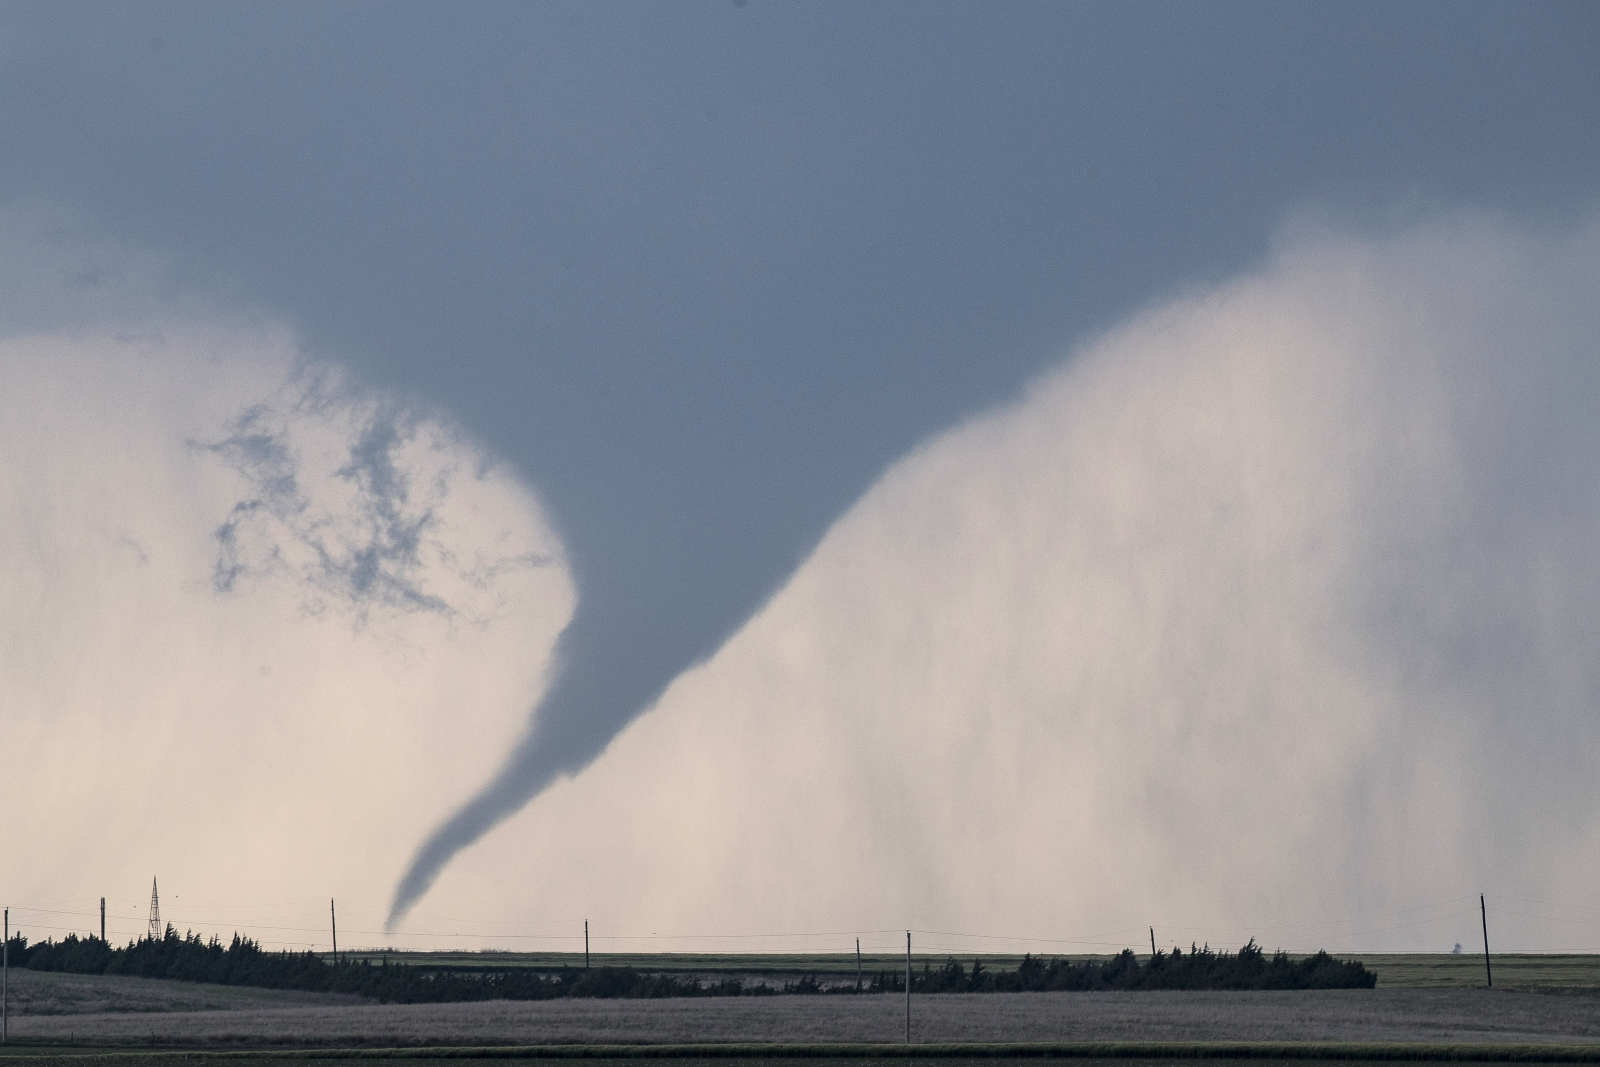 Biggest Tornado Outbreaks Are Spawning More Twisters